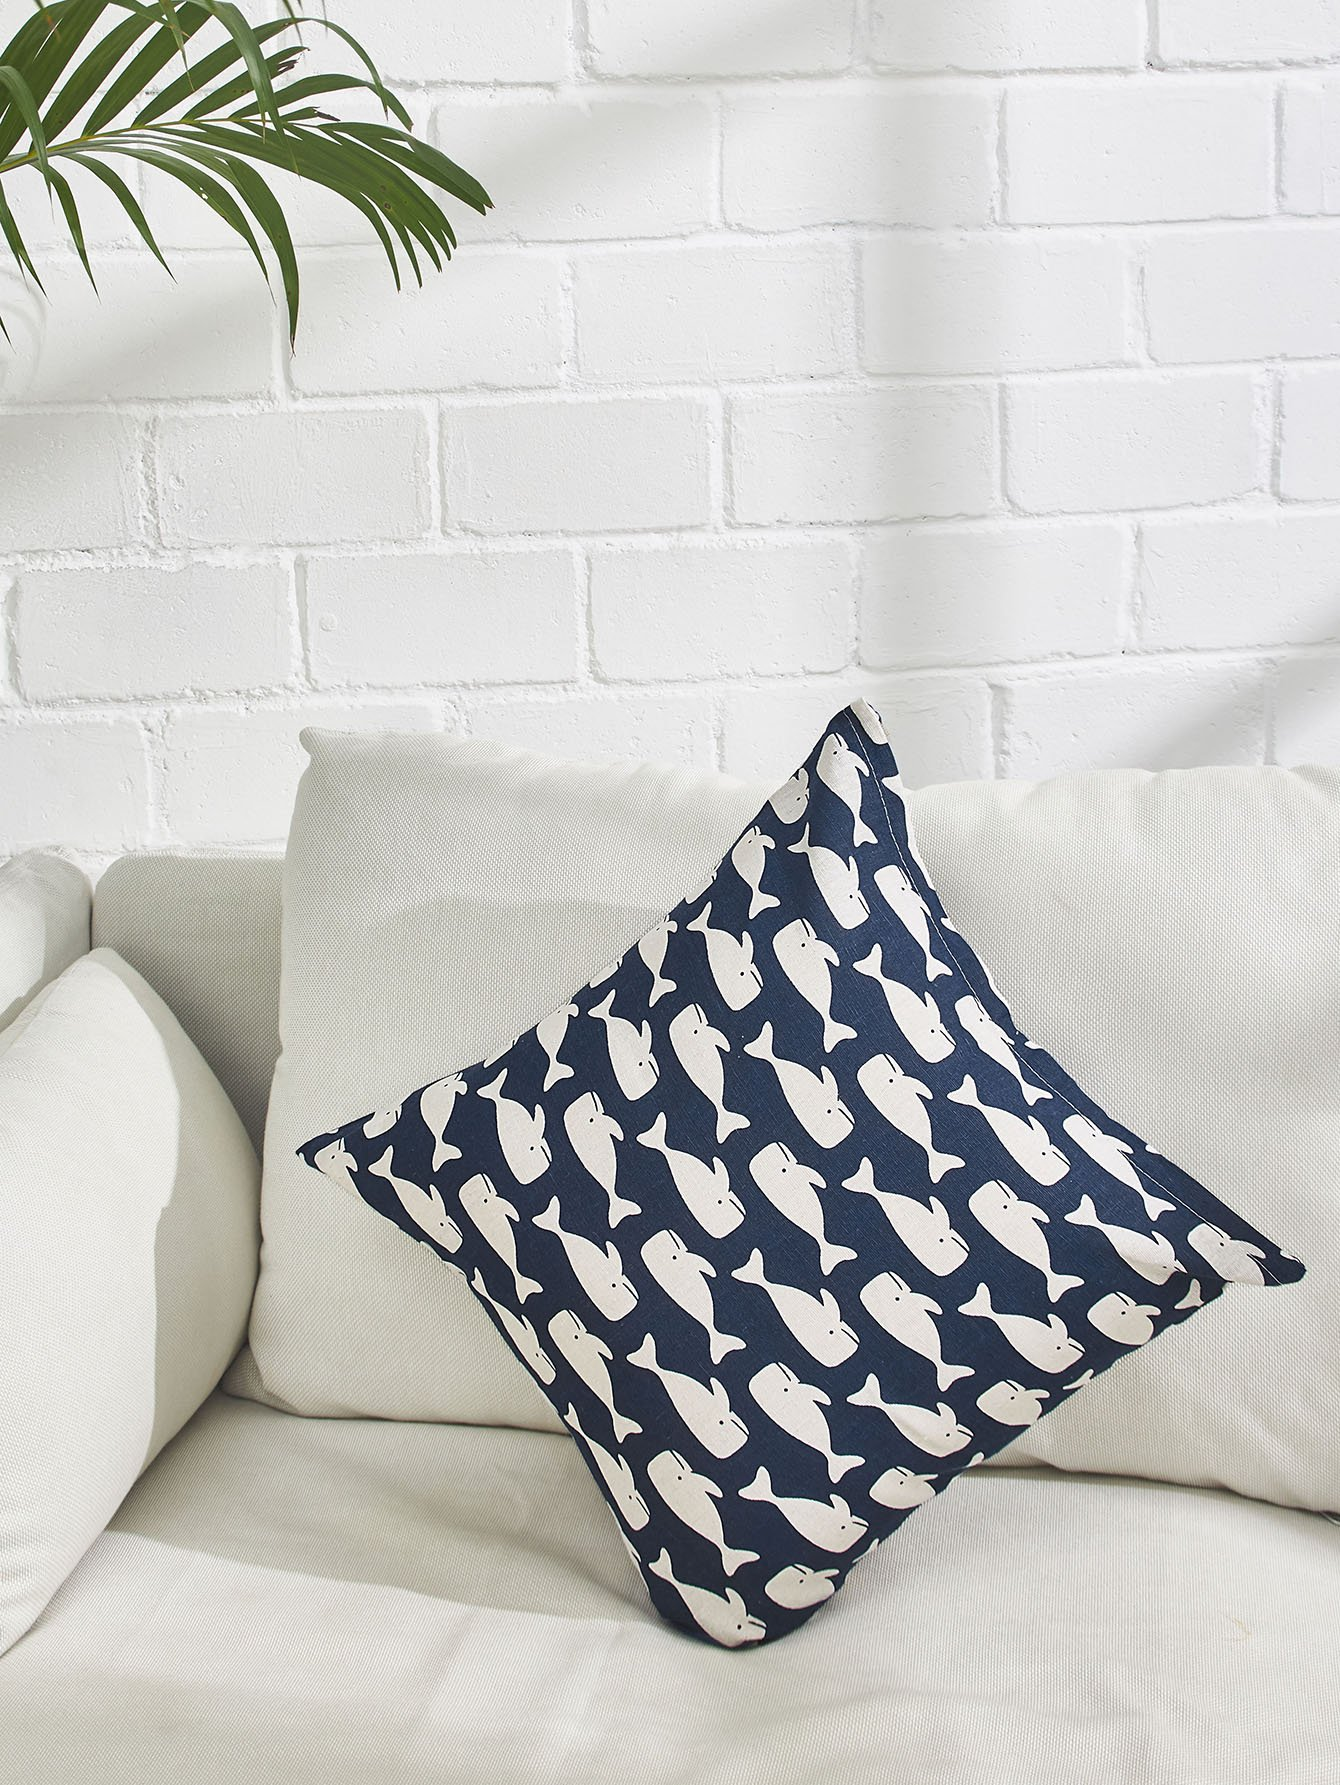 Allover Fish Print Pillowcase Cover allover grid print pillowcase cover